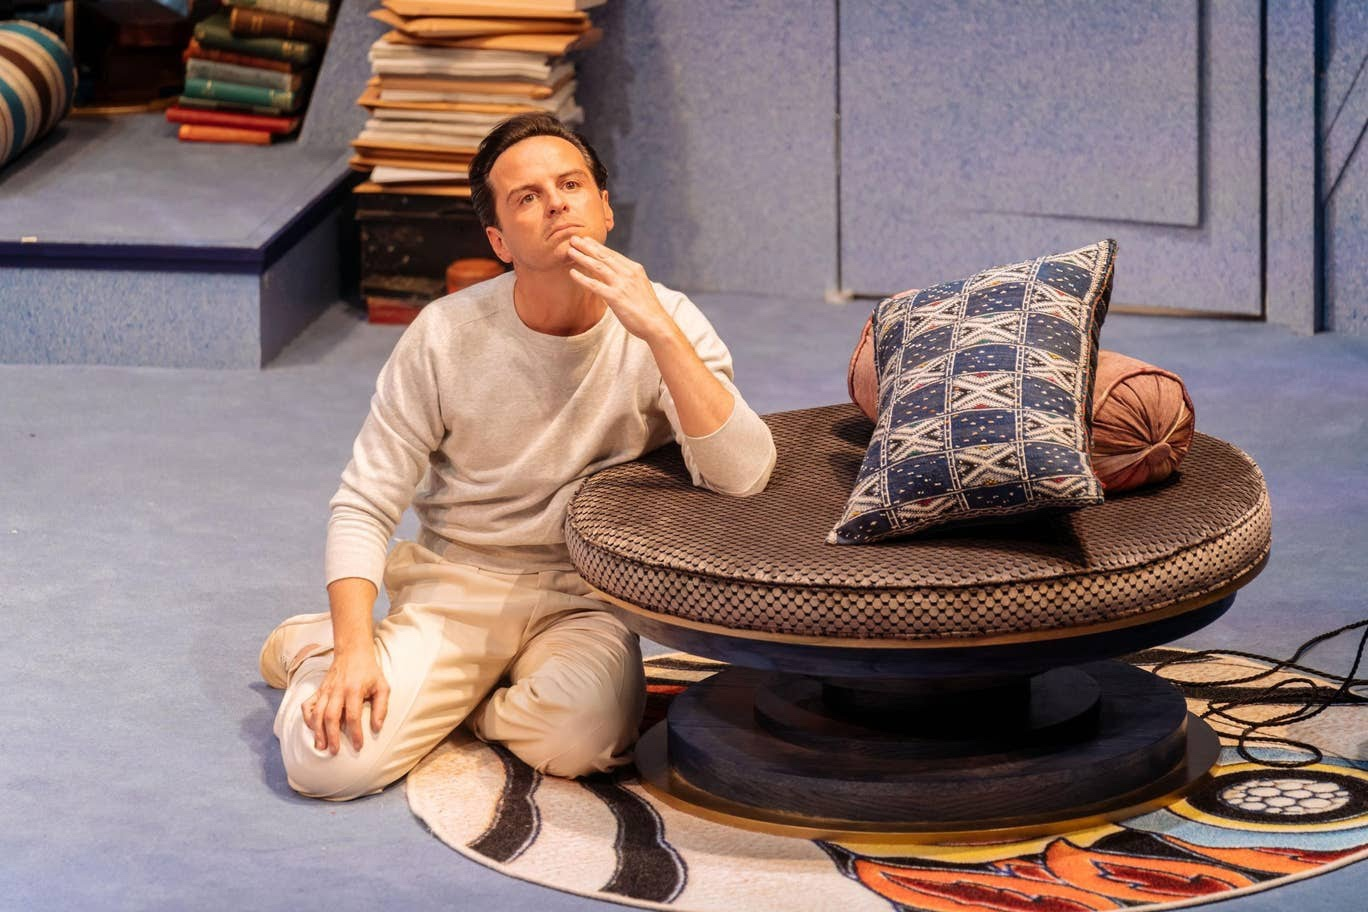 Andrew Scott, in all-white clothing, rests on a circular leather stool, which has two cushions on it.